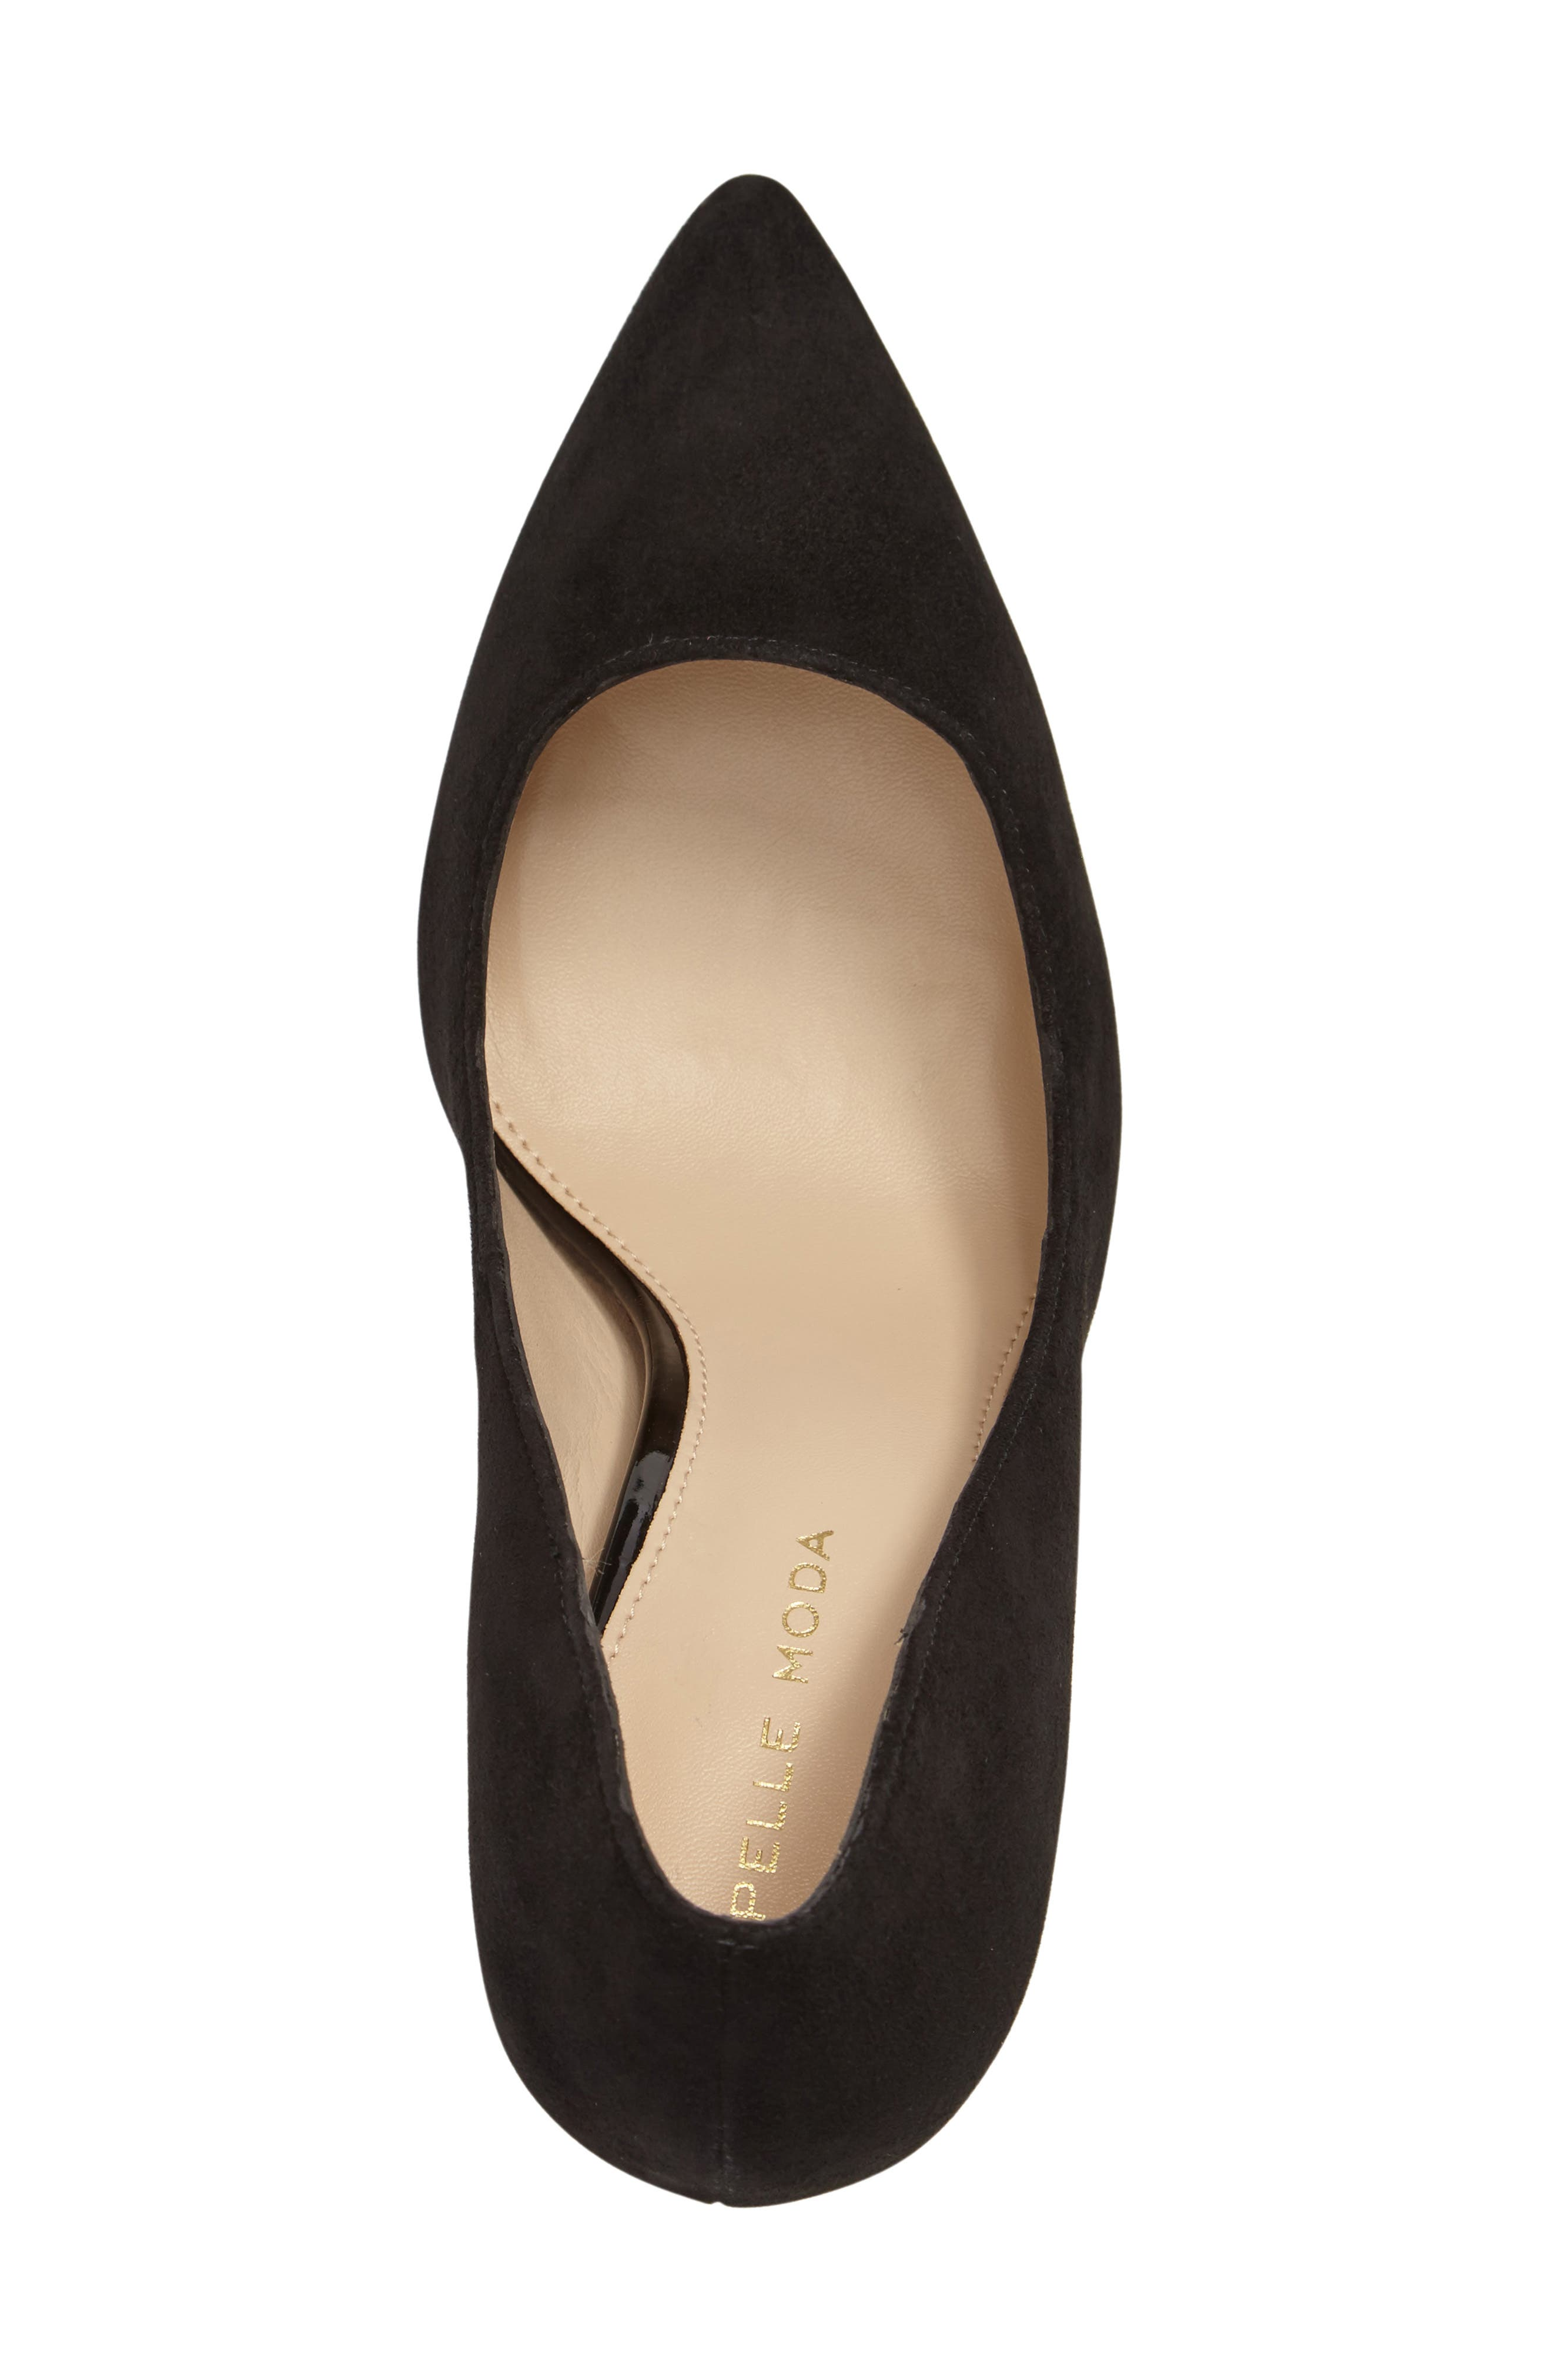 Vally Pointy Toe Pump,                             Alternate thumbnail 3, color,                             001